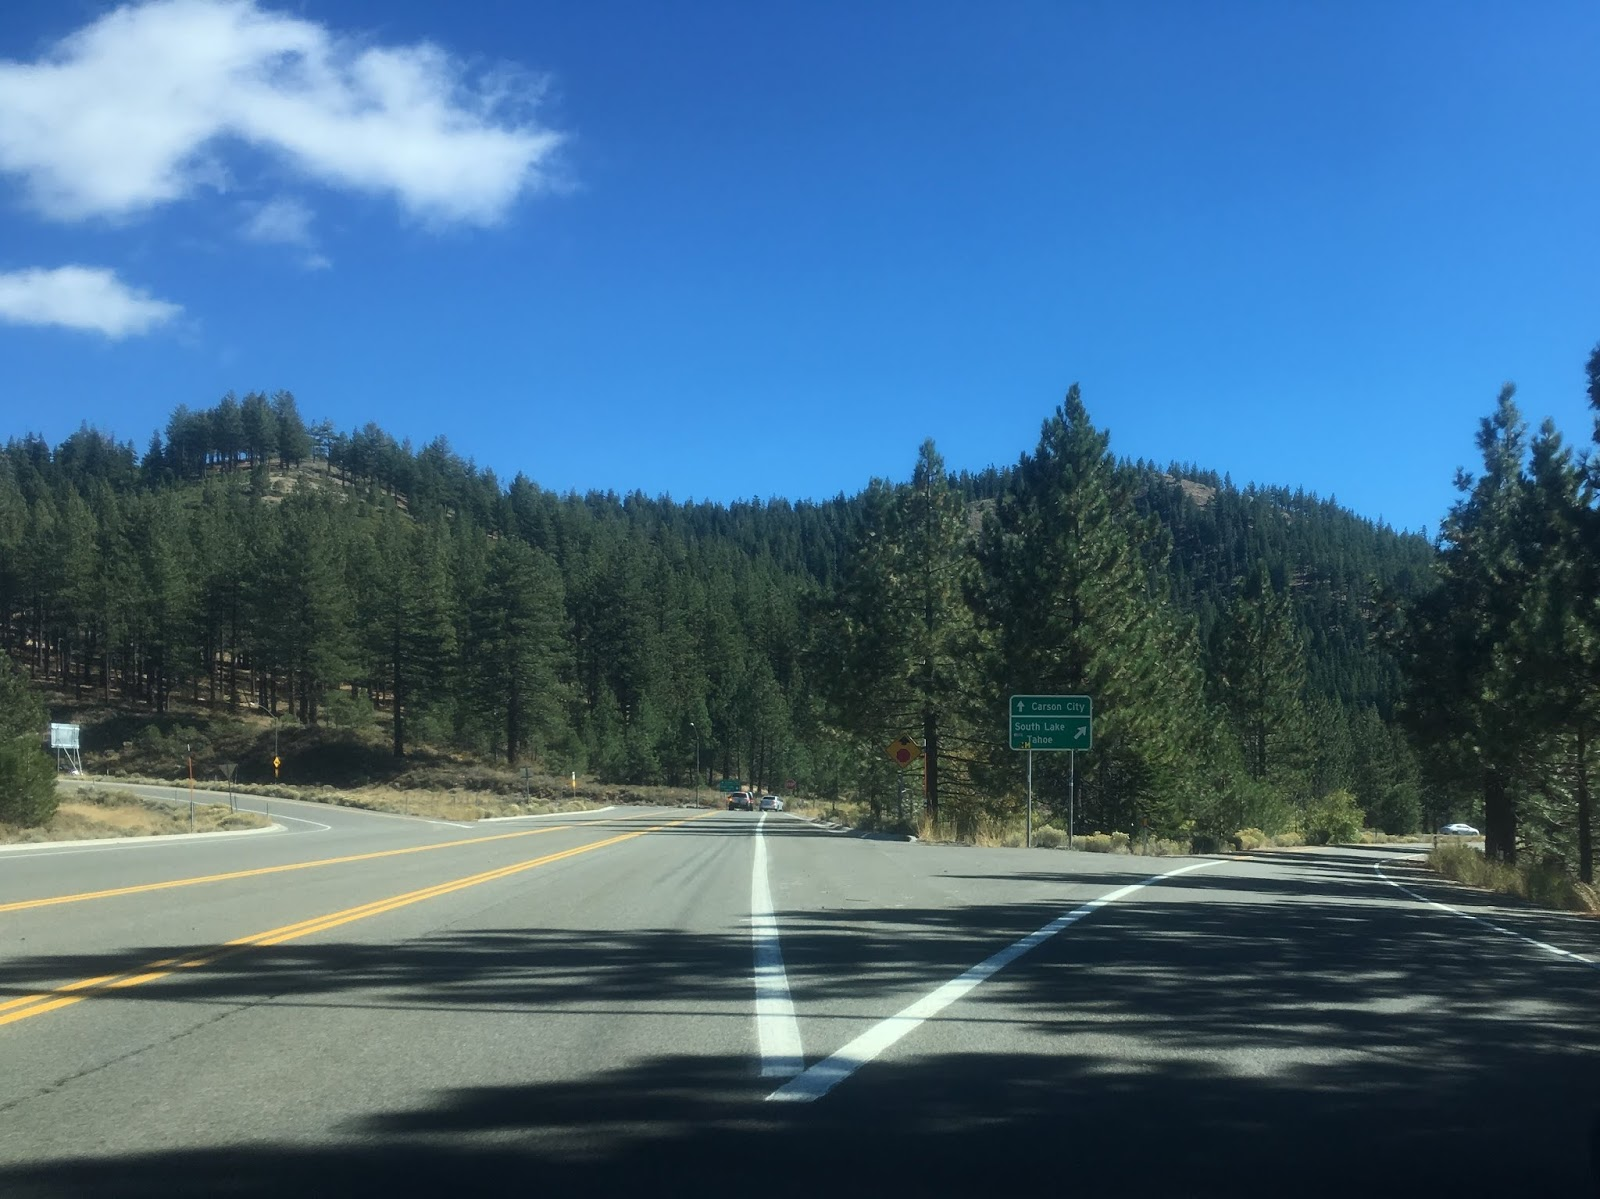 part 3 of this series covers the history of us 50 along the shore of lake tahoe and can be found here